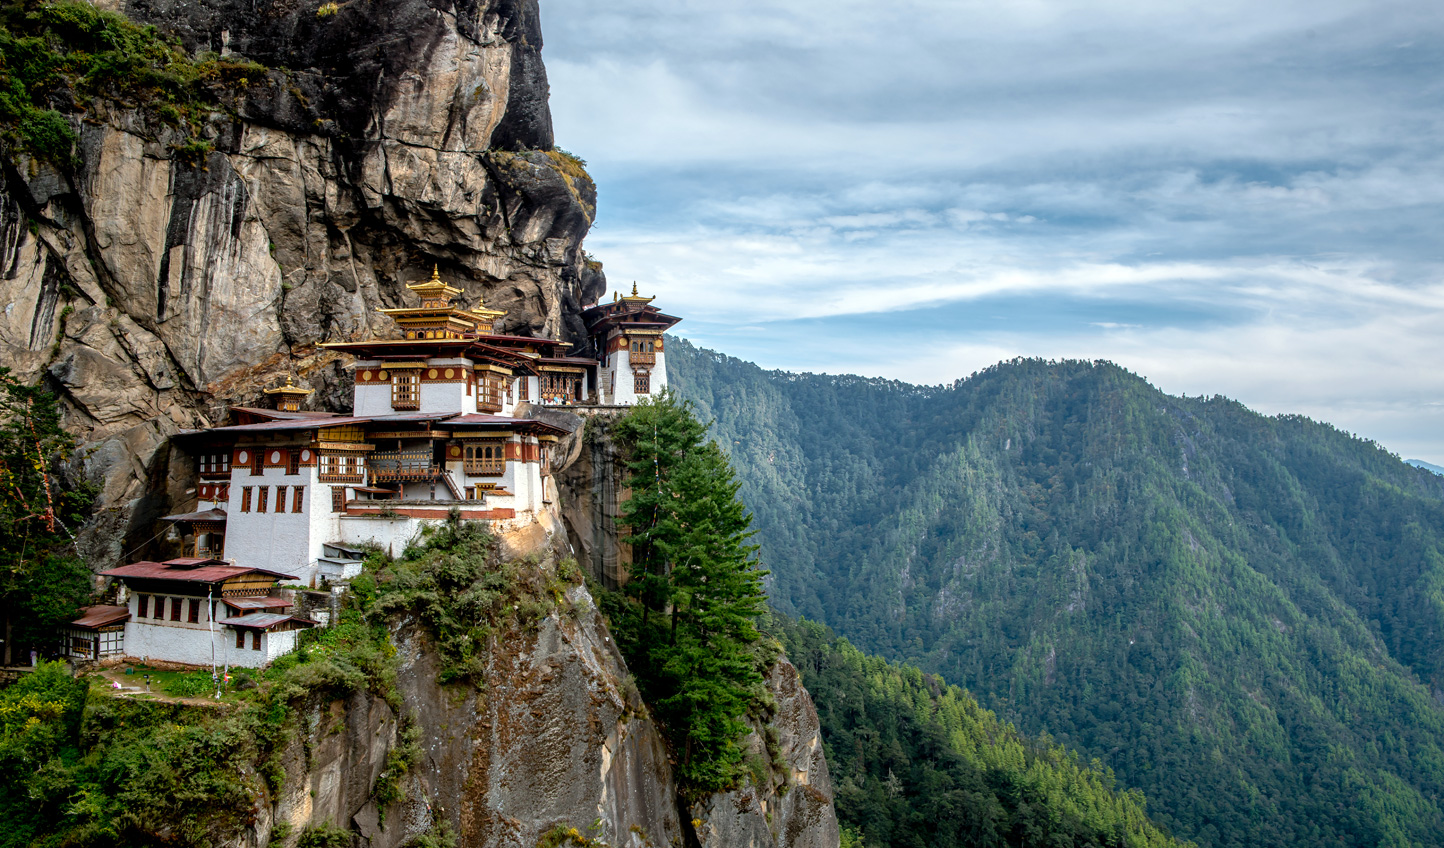 Warm up for your trek with a hike up to Tiger's Nest